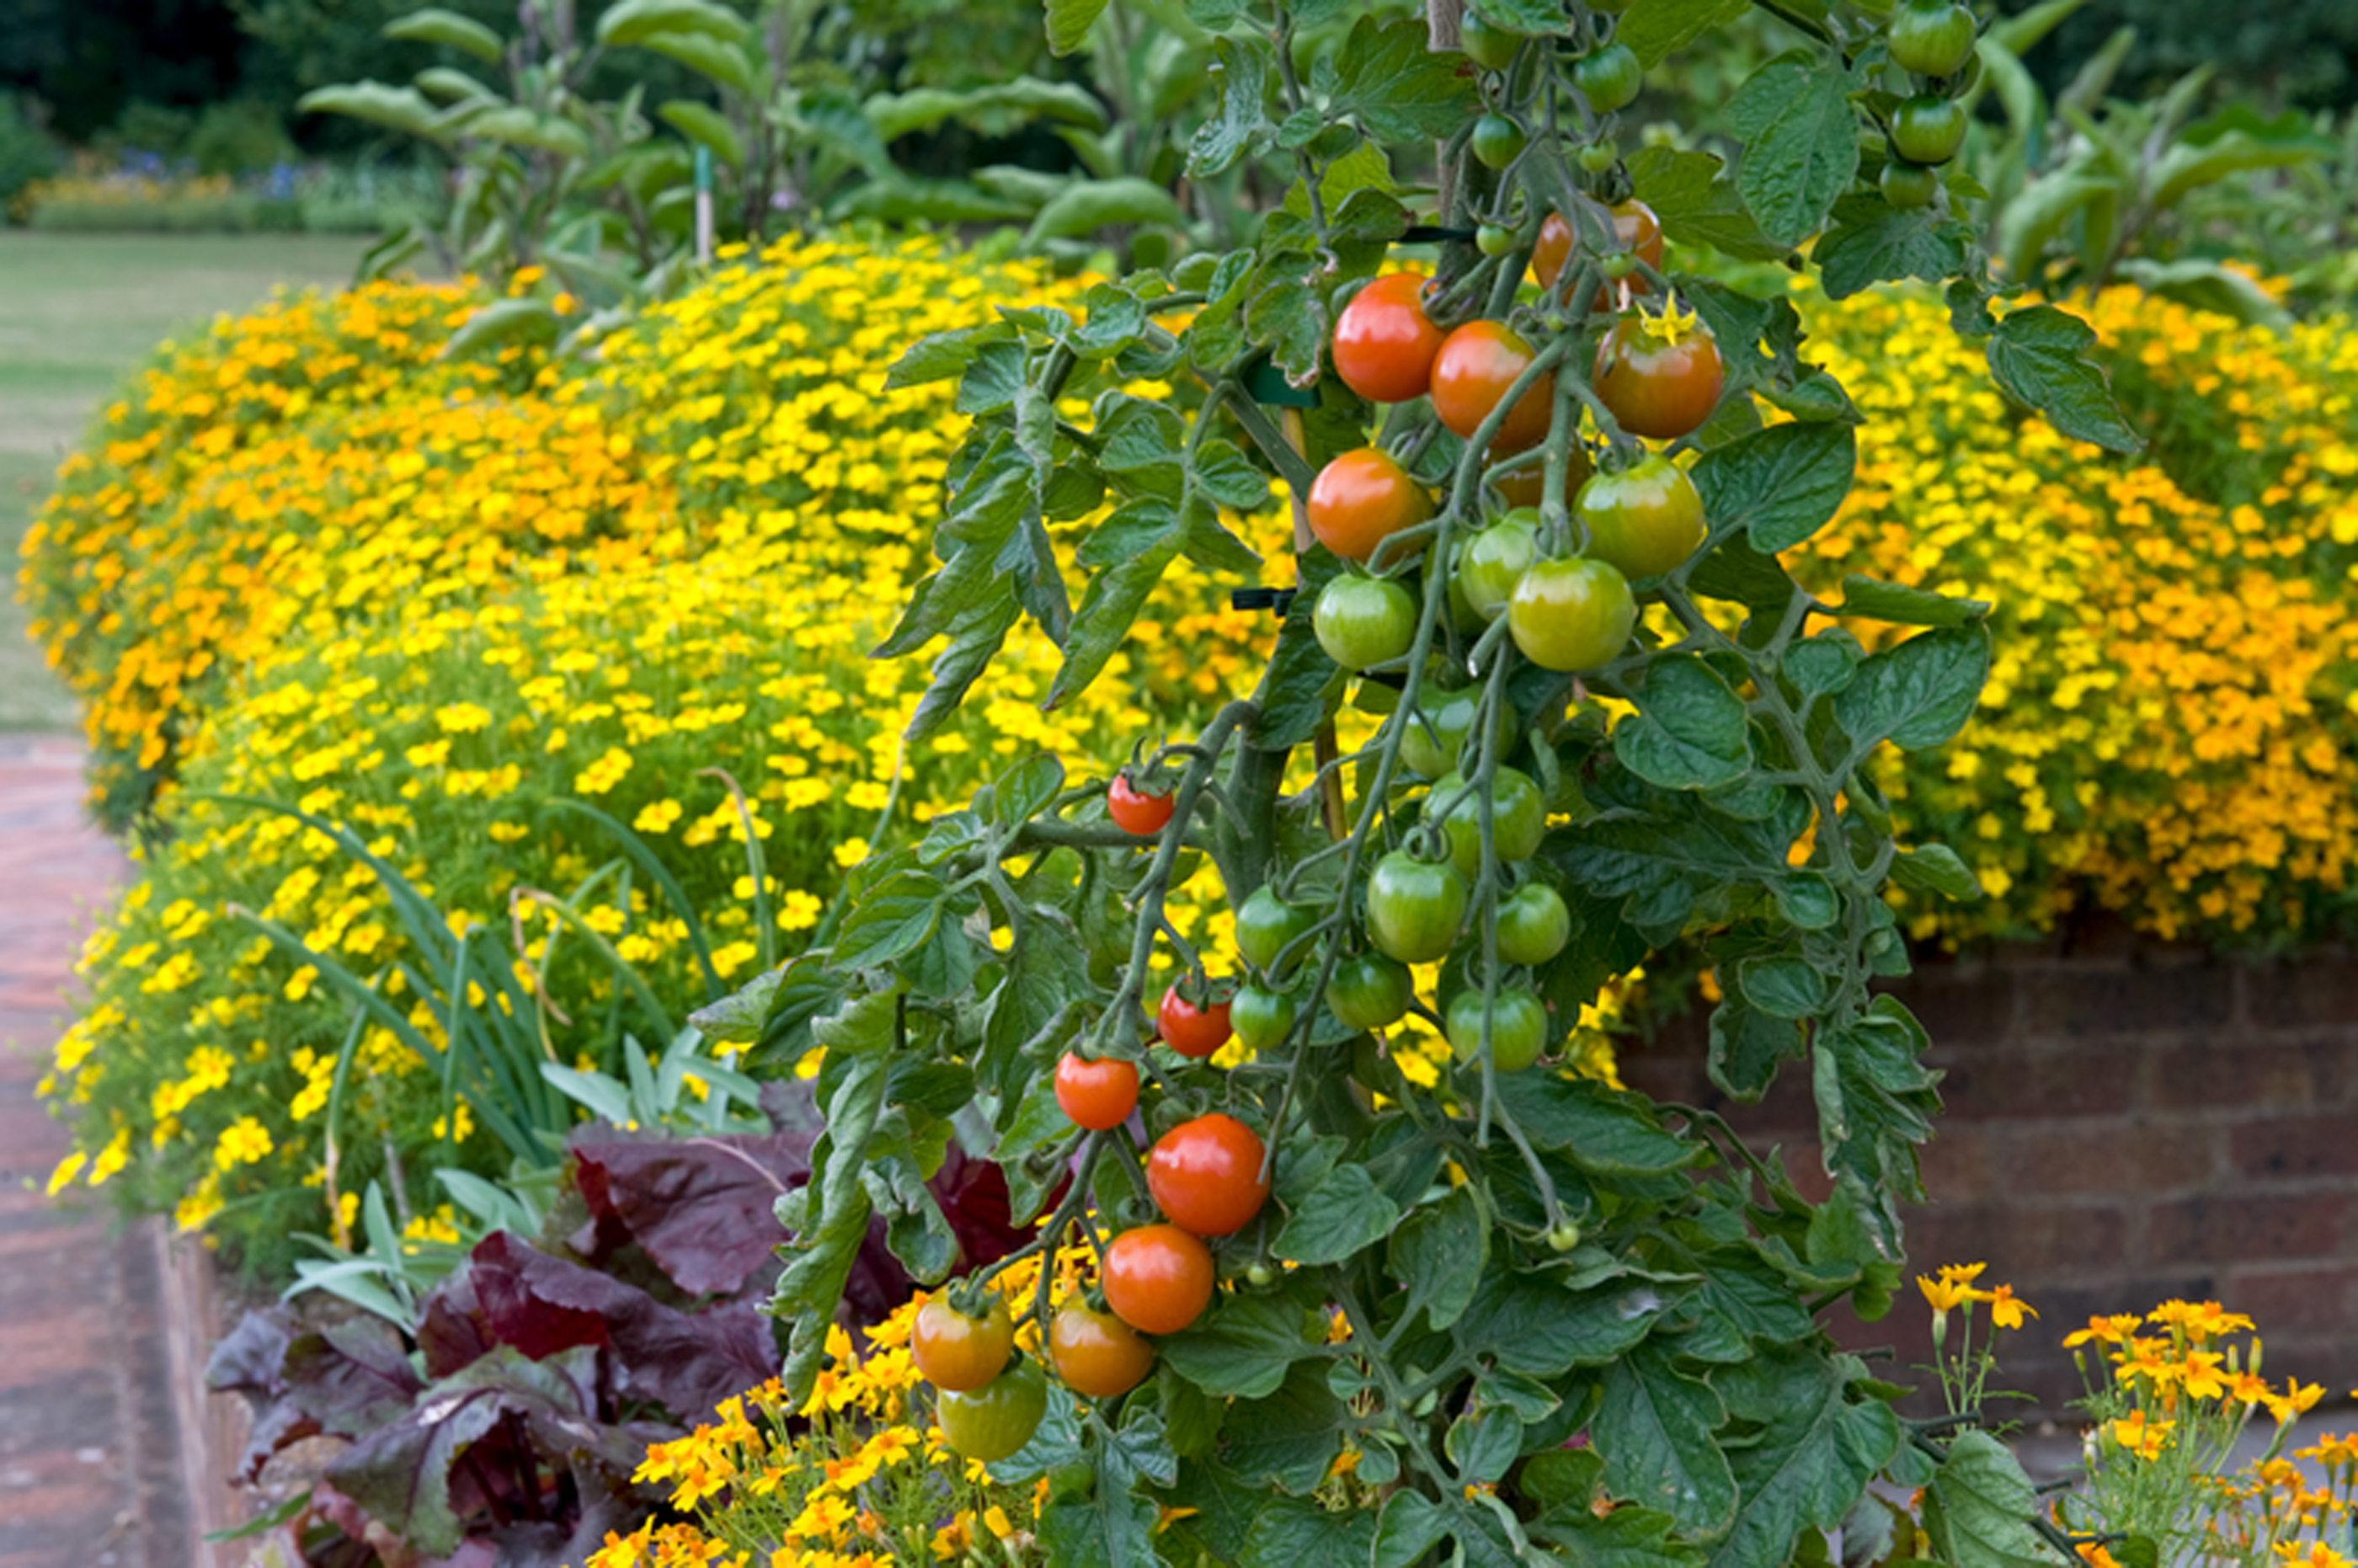 Tagetes growing with tomatoes. (Jerry Harpur/RHS/PA)